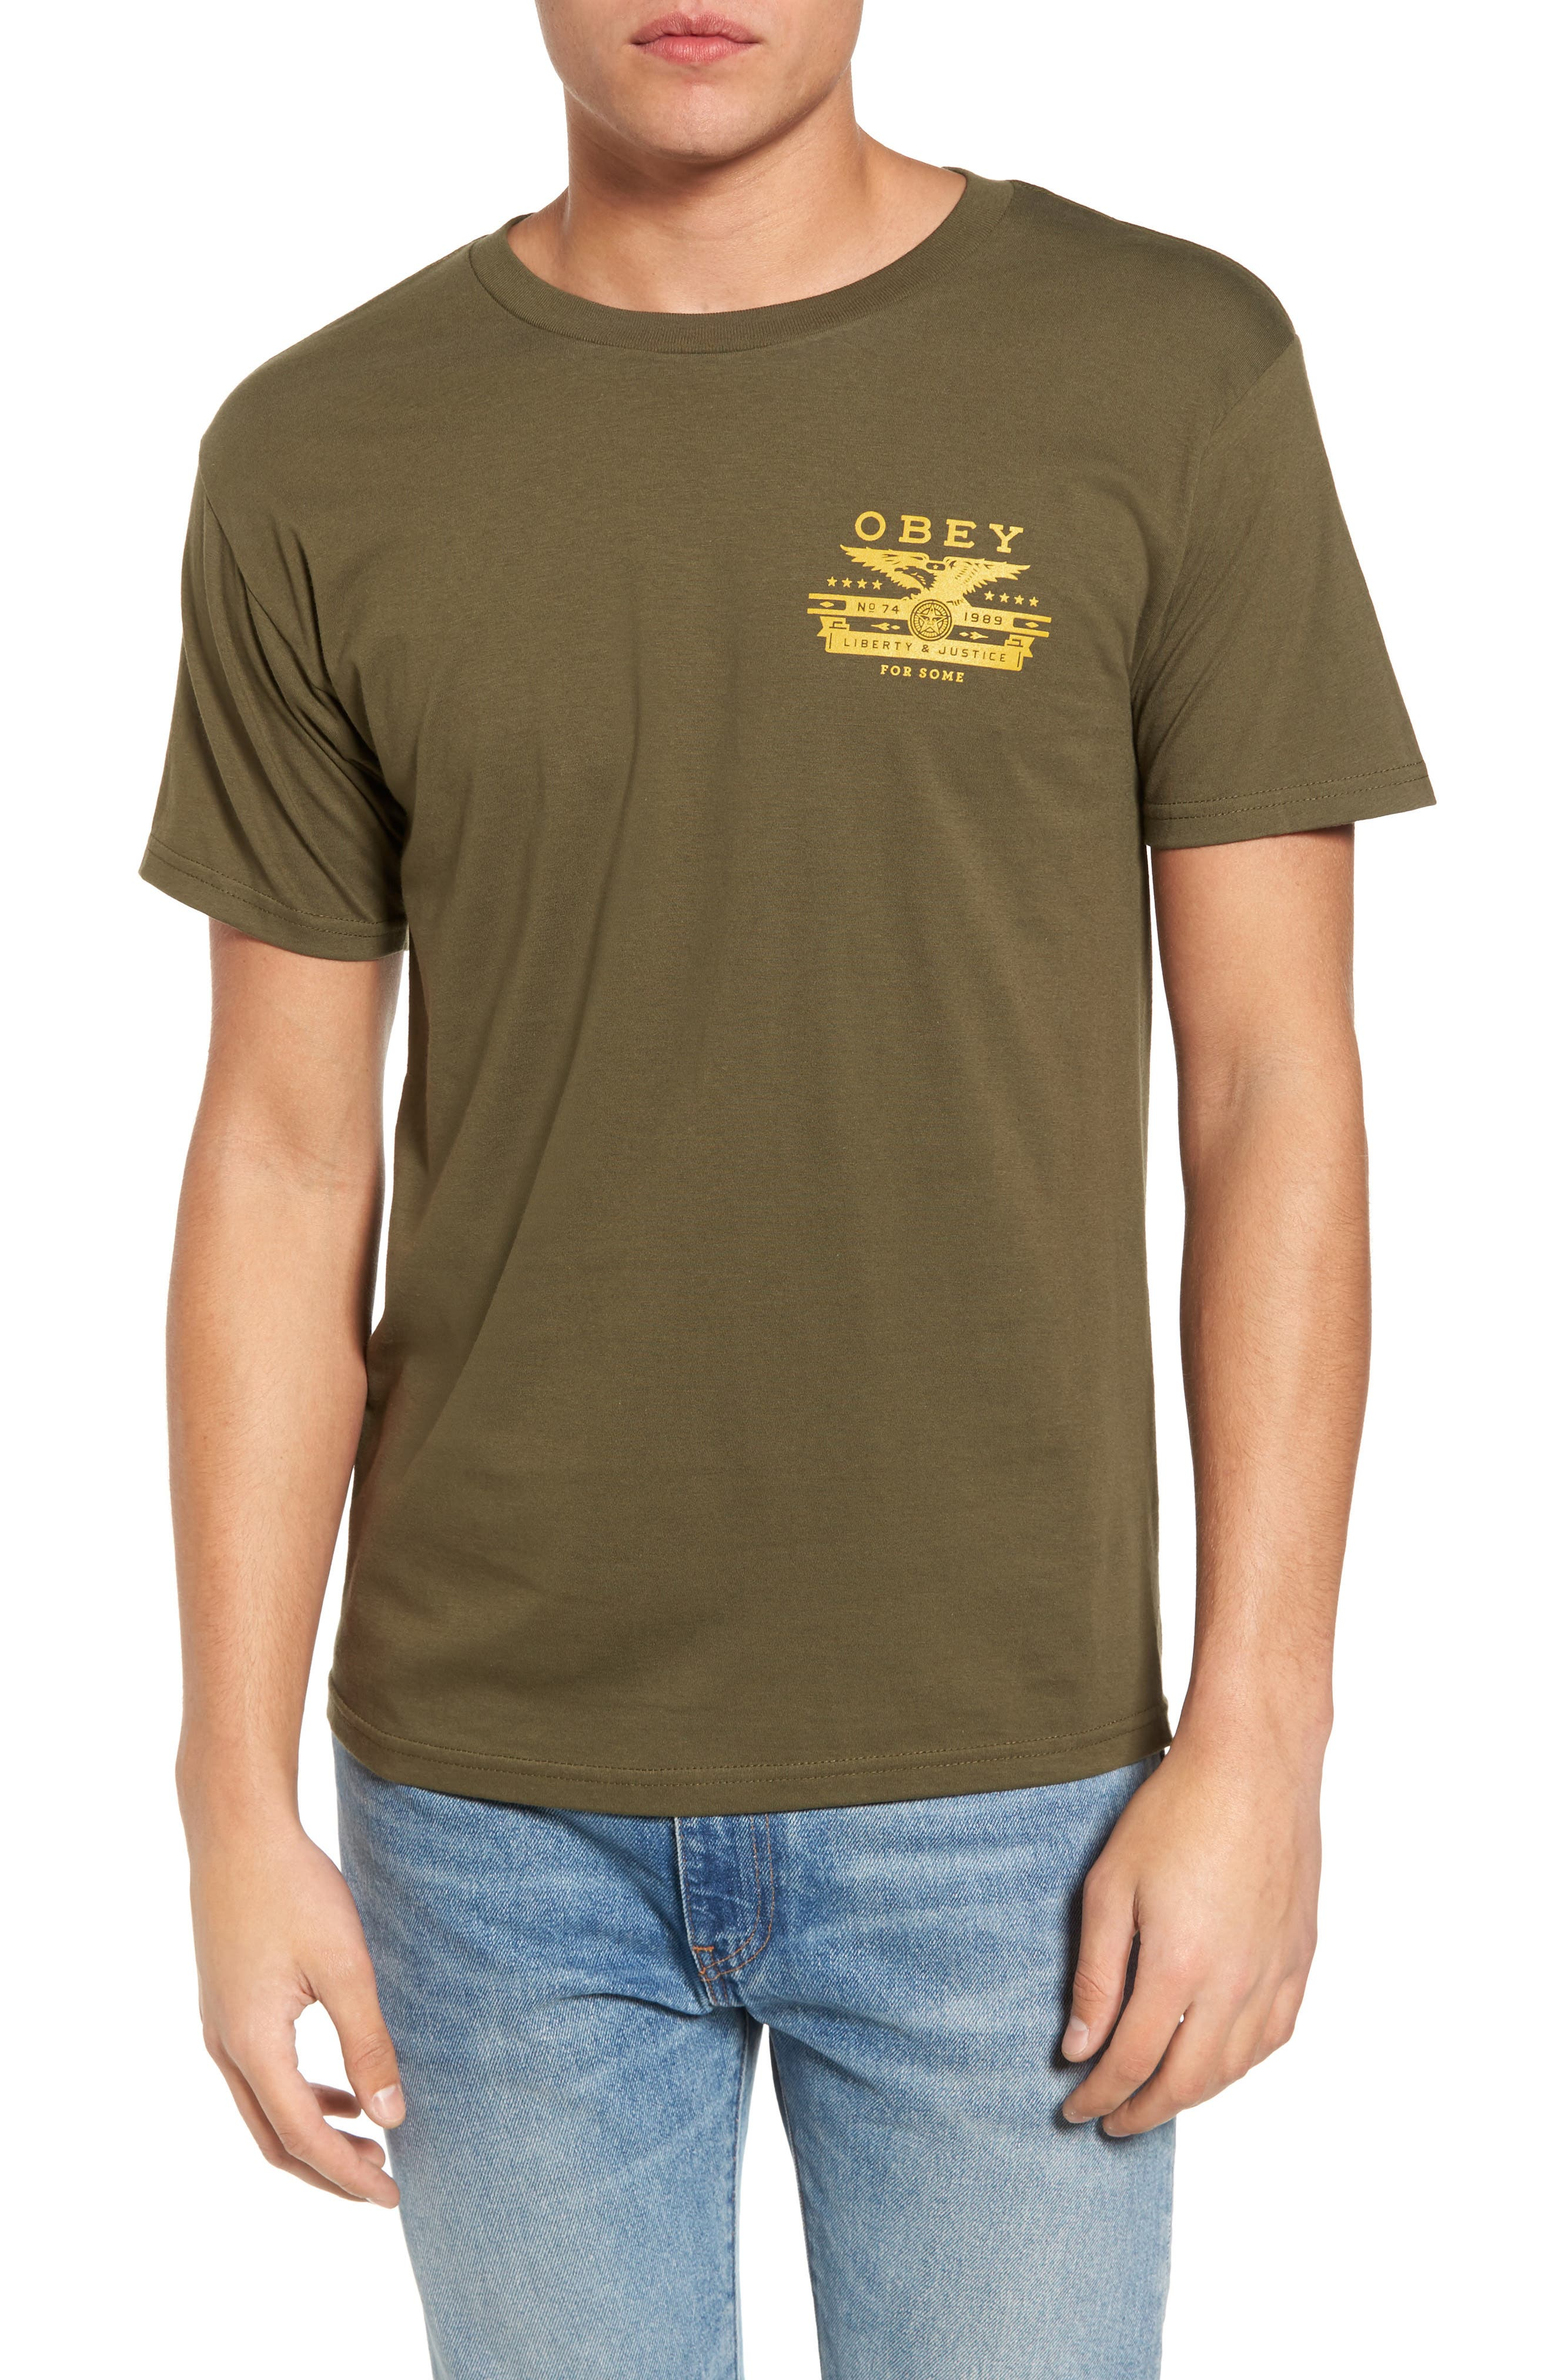 Dissent & Justice T-Shirt,                         Main,                         color, 307